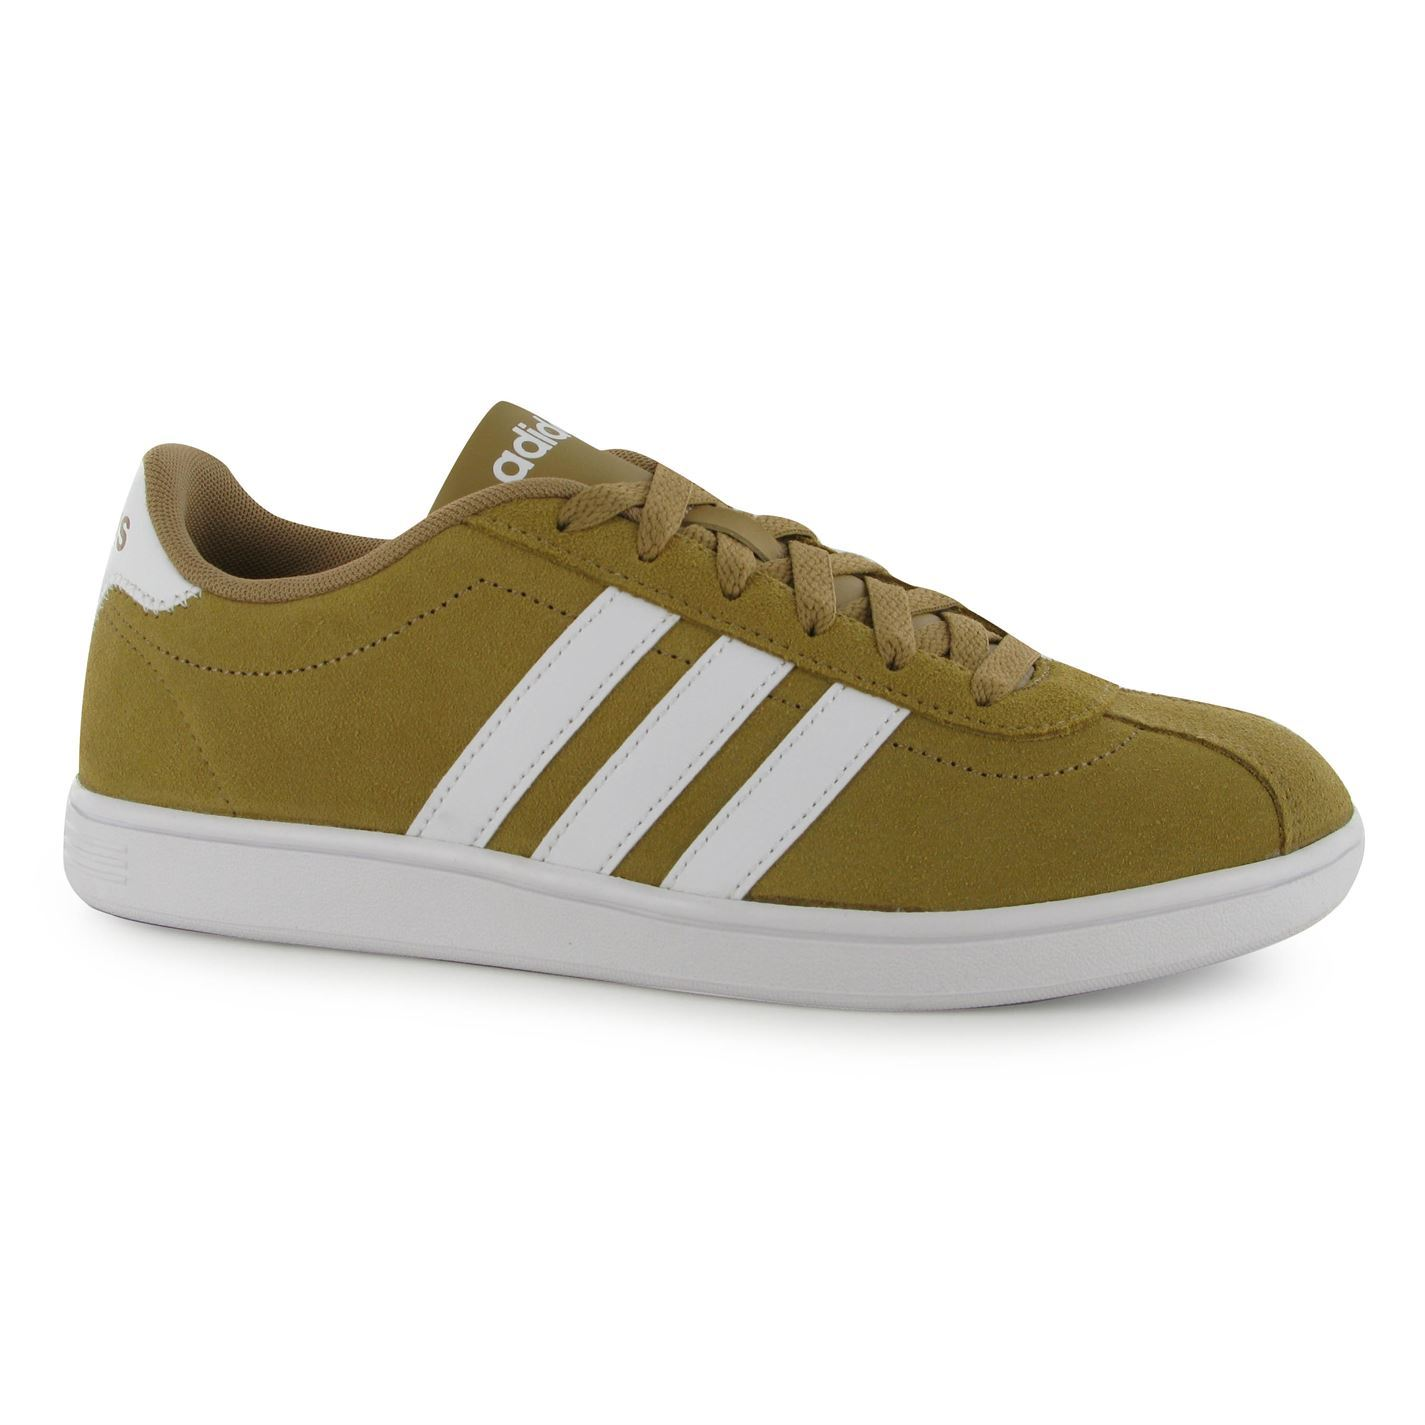 adidas vl neo court suede trainers mens canvas white casual sneakers shoes ebay. Black Bedroom Furniture Sets. Home Design Ideas